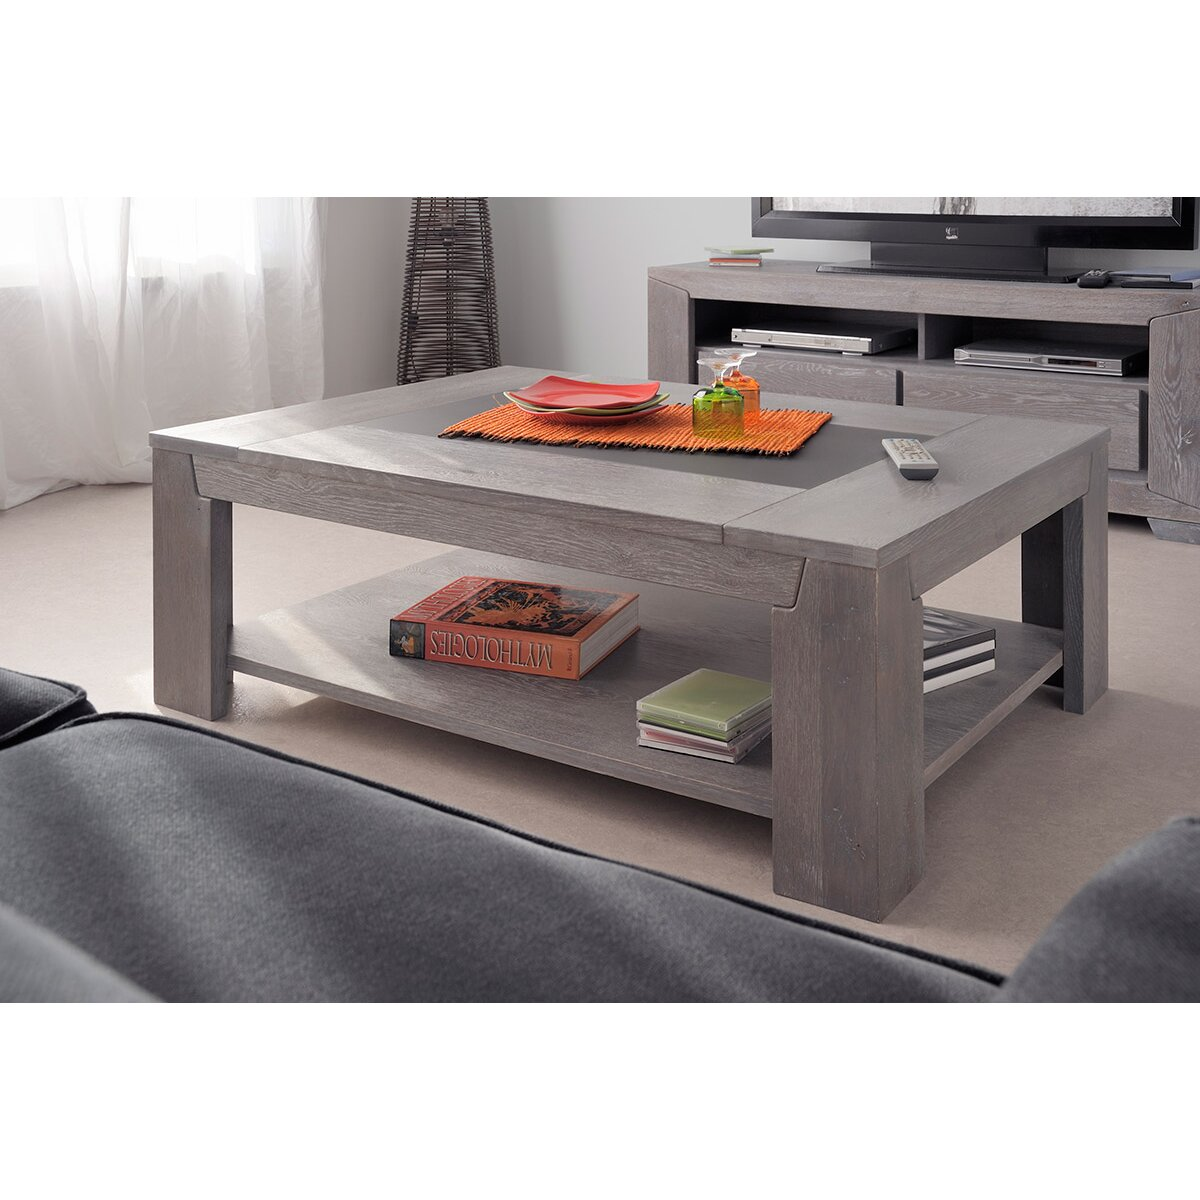 Parisot titan coffee table reviews wayfair - Table basse grise bois ...